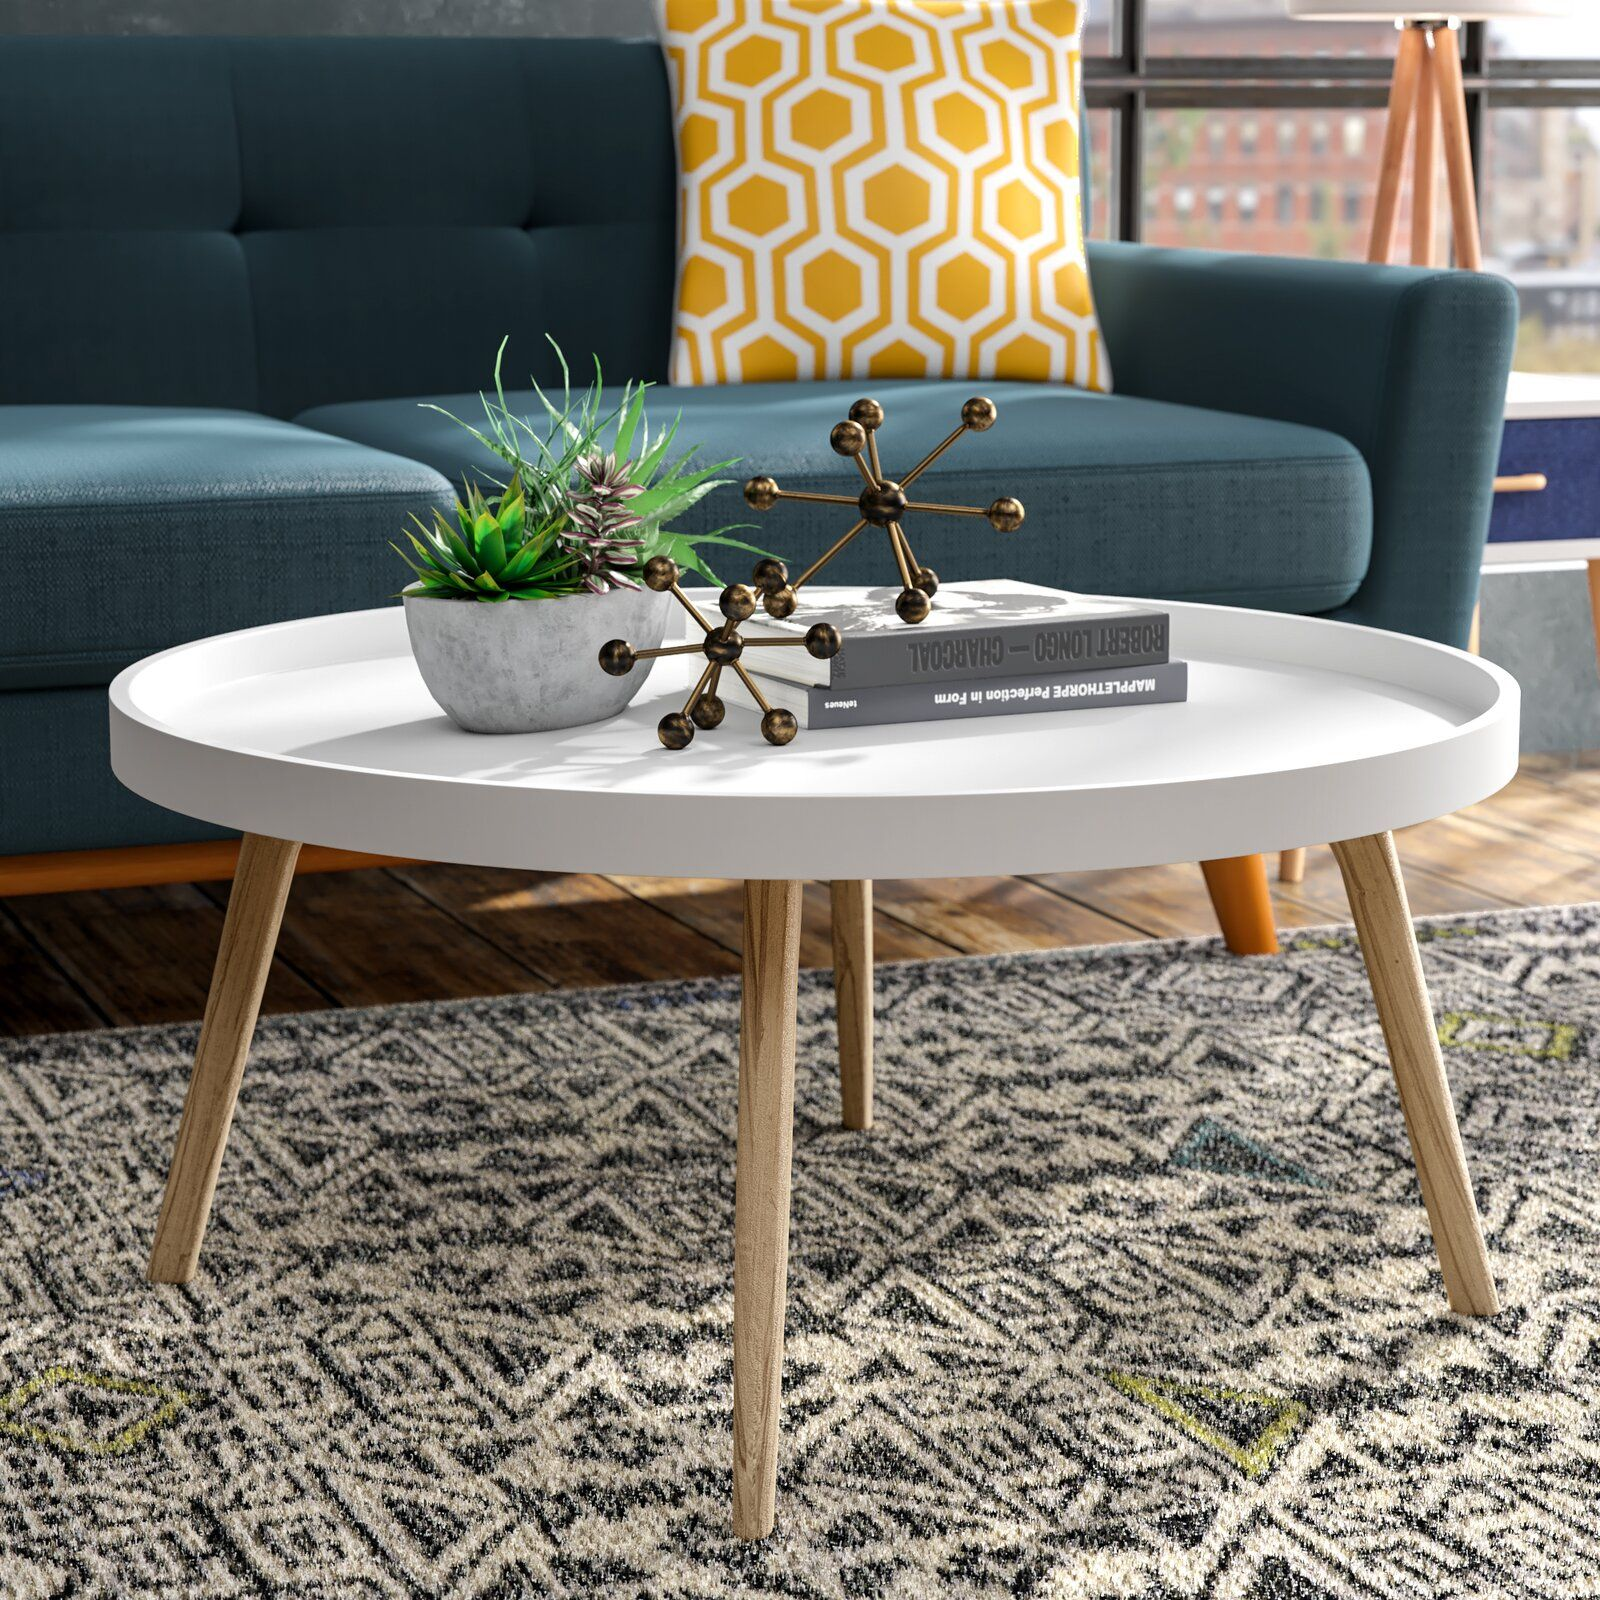 Table Basse Basil Coffee Table Round Coffee Table Decorating Coffee Tables [ 1600 x 1600 Pixel ]